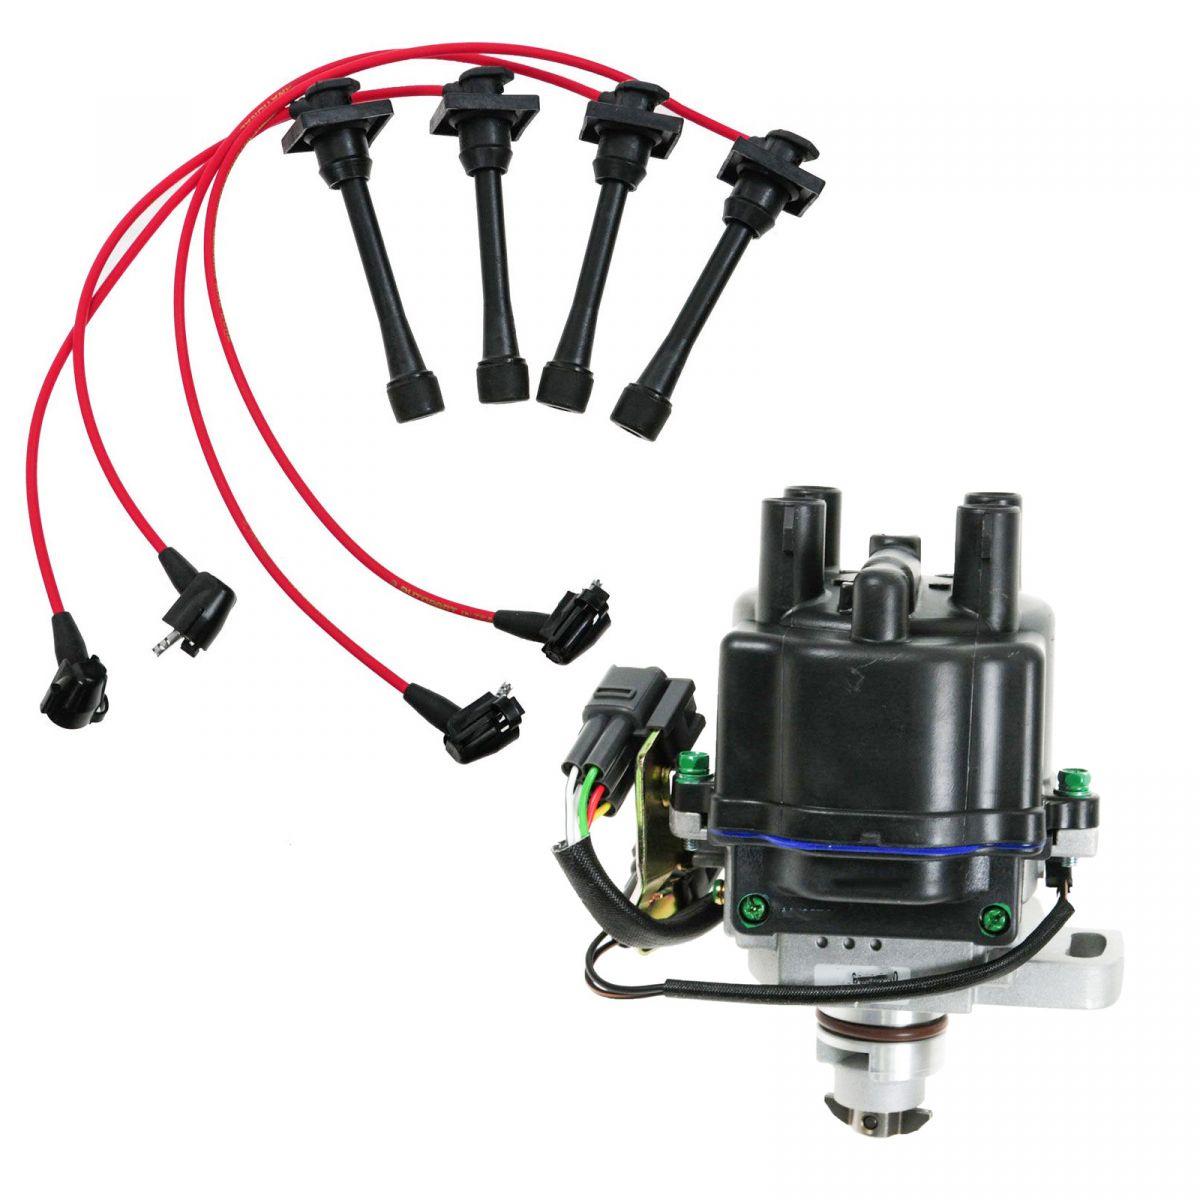 Distributor Wire Set For Toyota Corolla Celica 18l 192659201911 2006 Electrical Wiring Diagram Manual Ebay